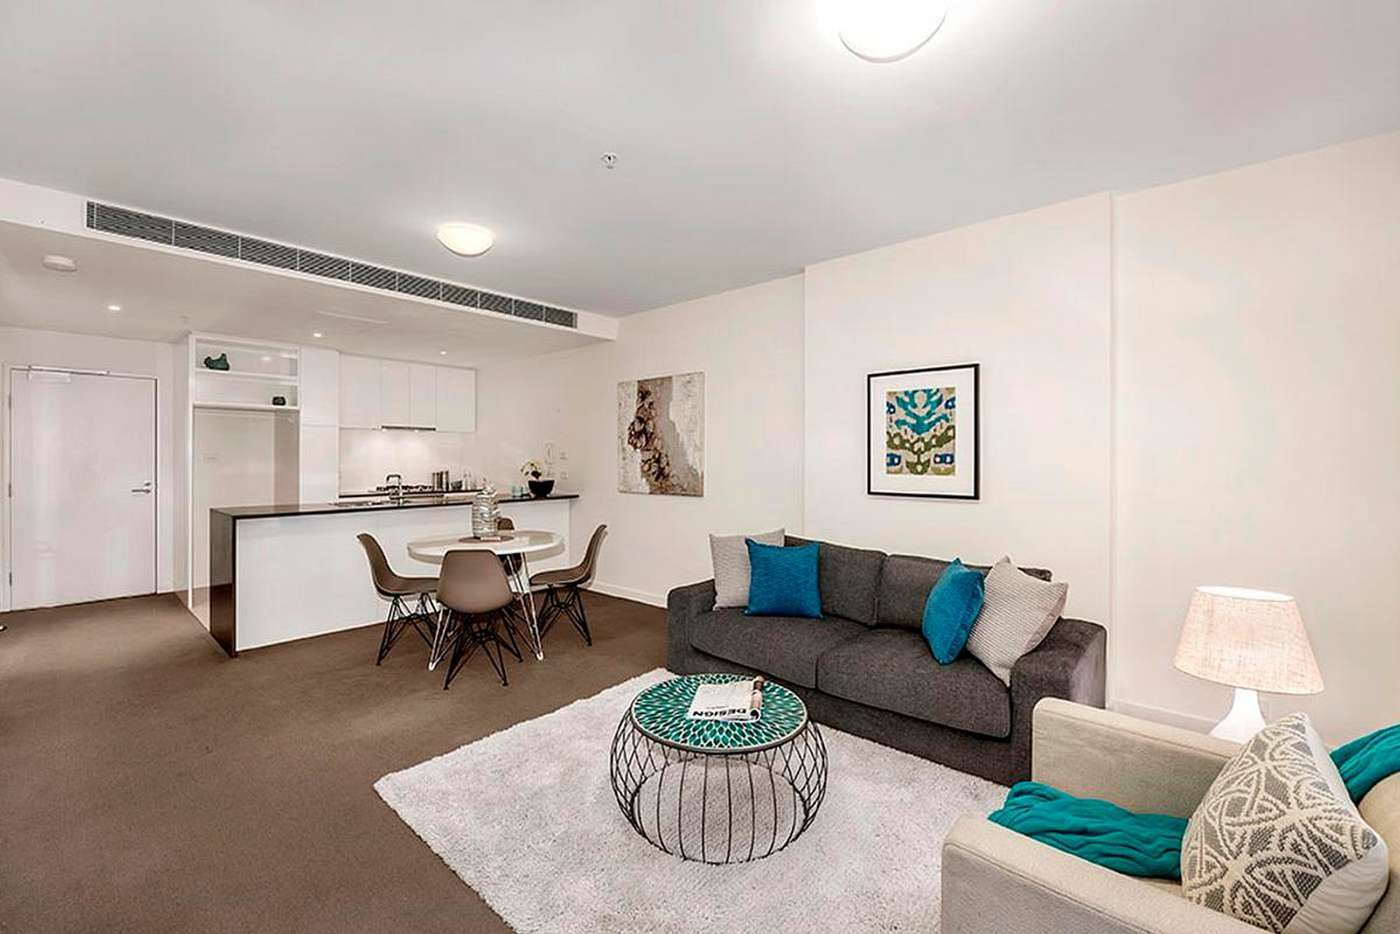 Main view of Homely apartment listing, 1602/8 Marmion Place, Docklands VIC 3008